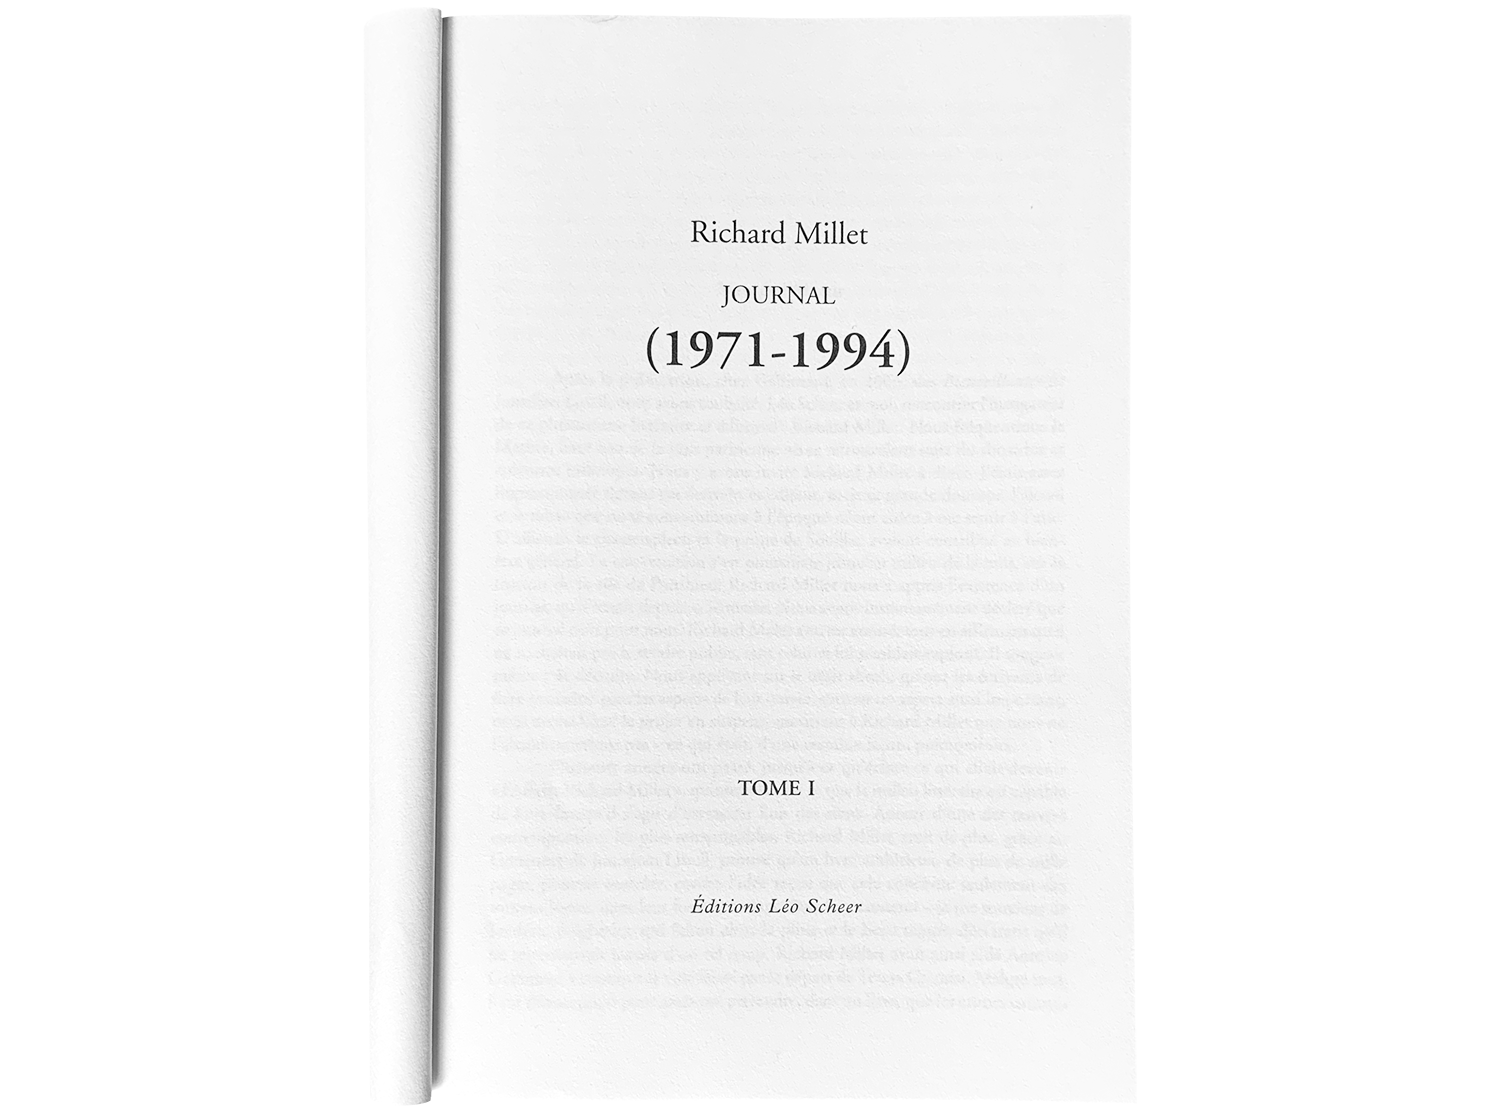 Richard Millet Journal Tome 1